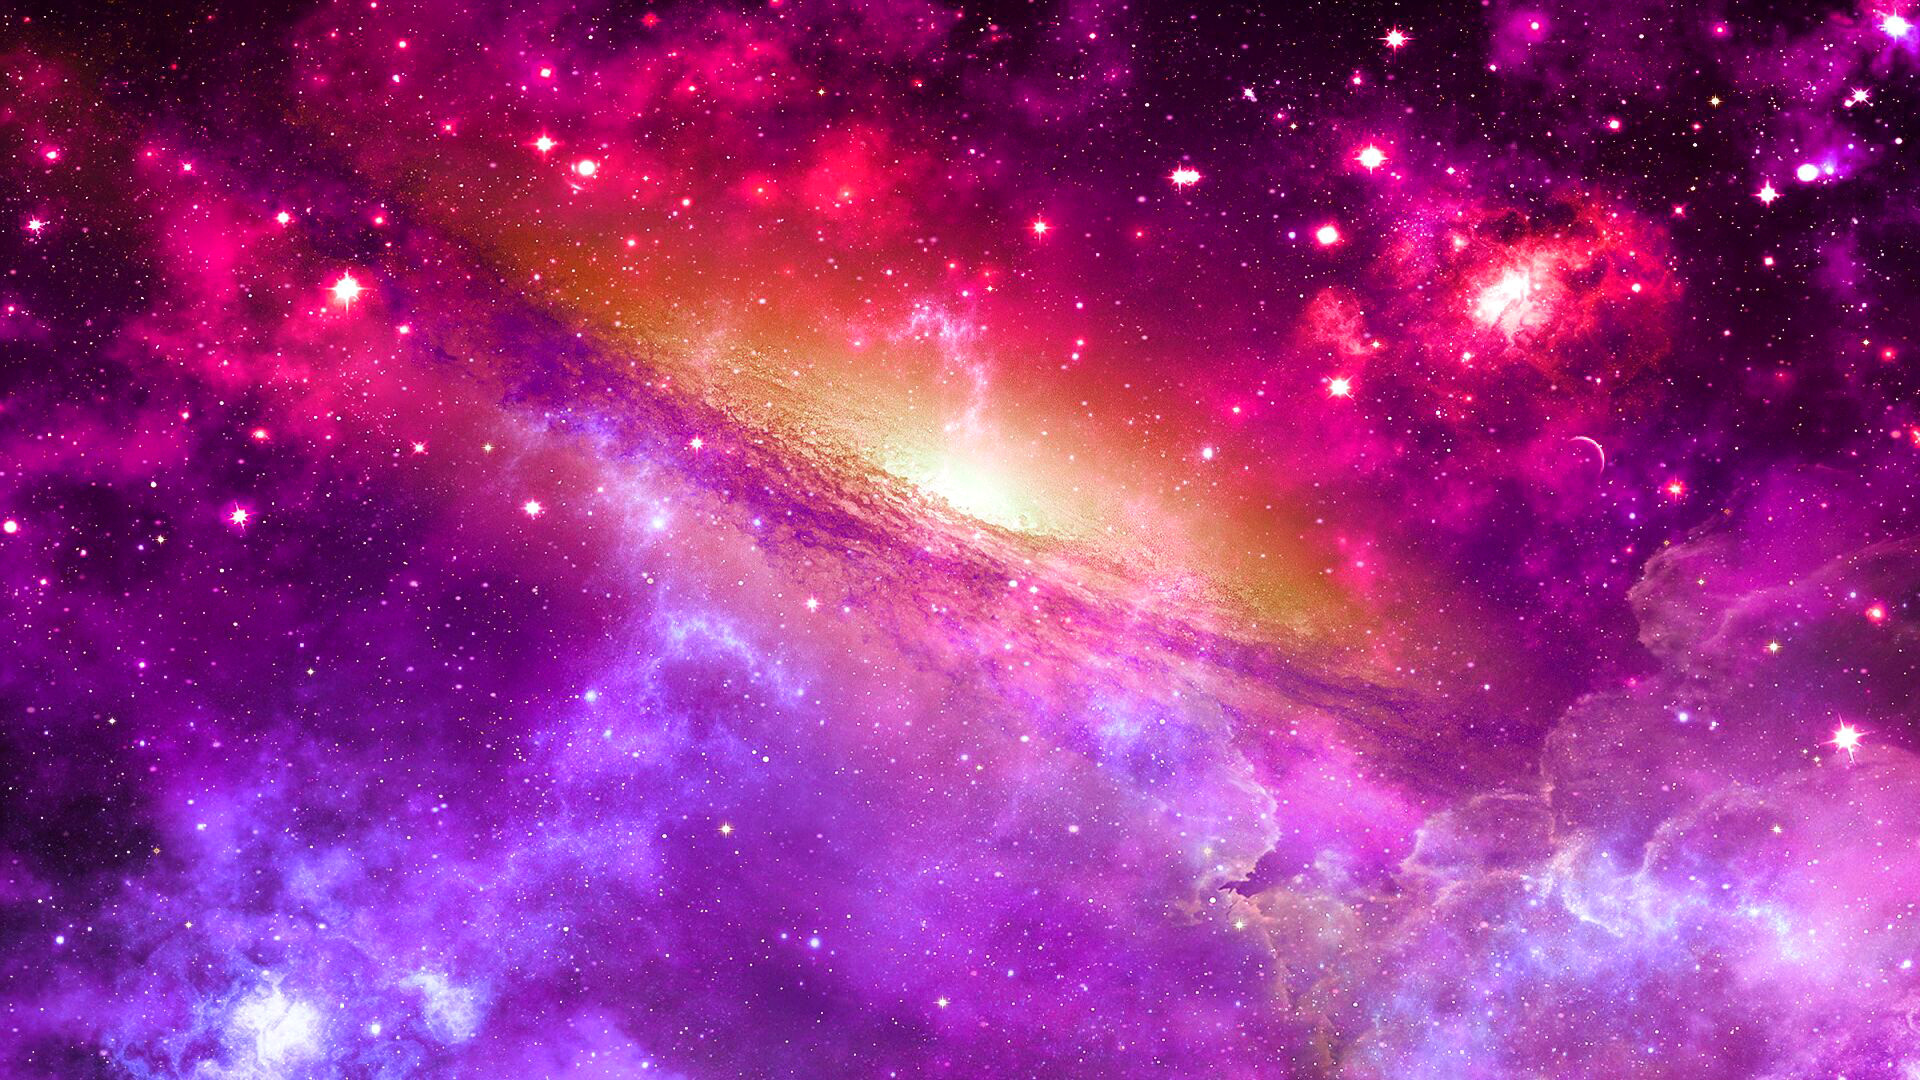 Full HD Space Wallpapers, Desktop Backgrounds HD, Pictures and Images